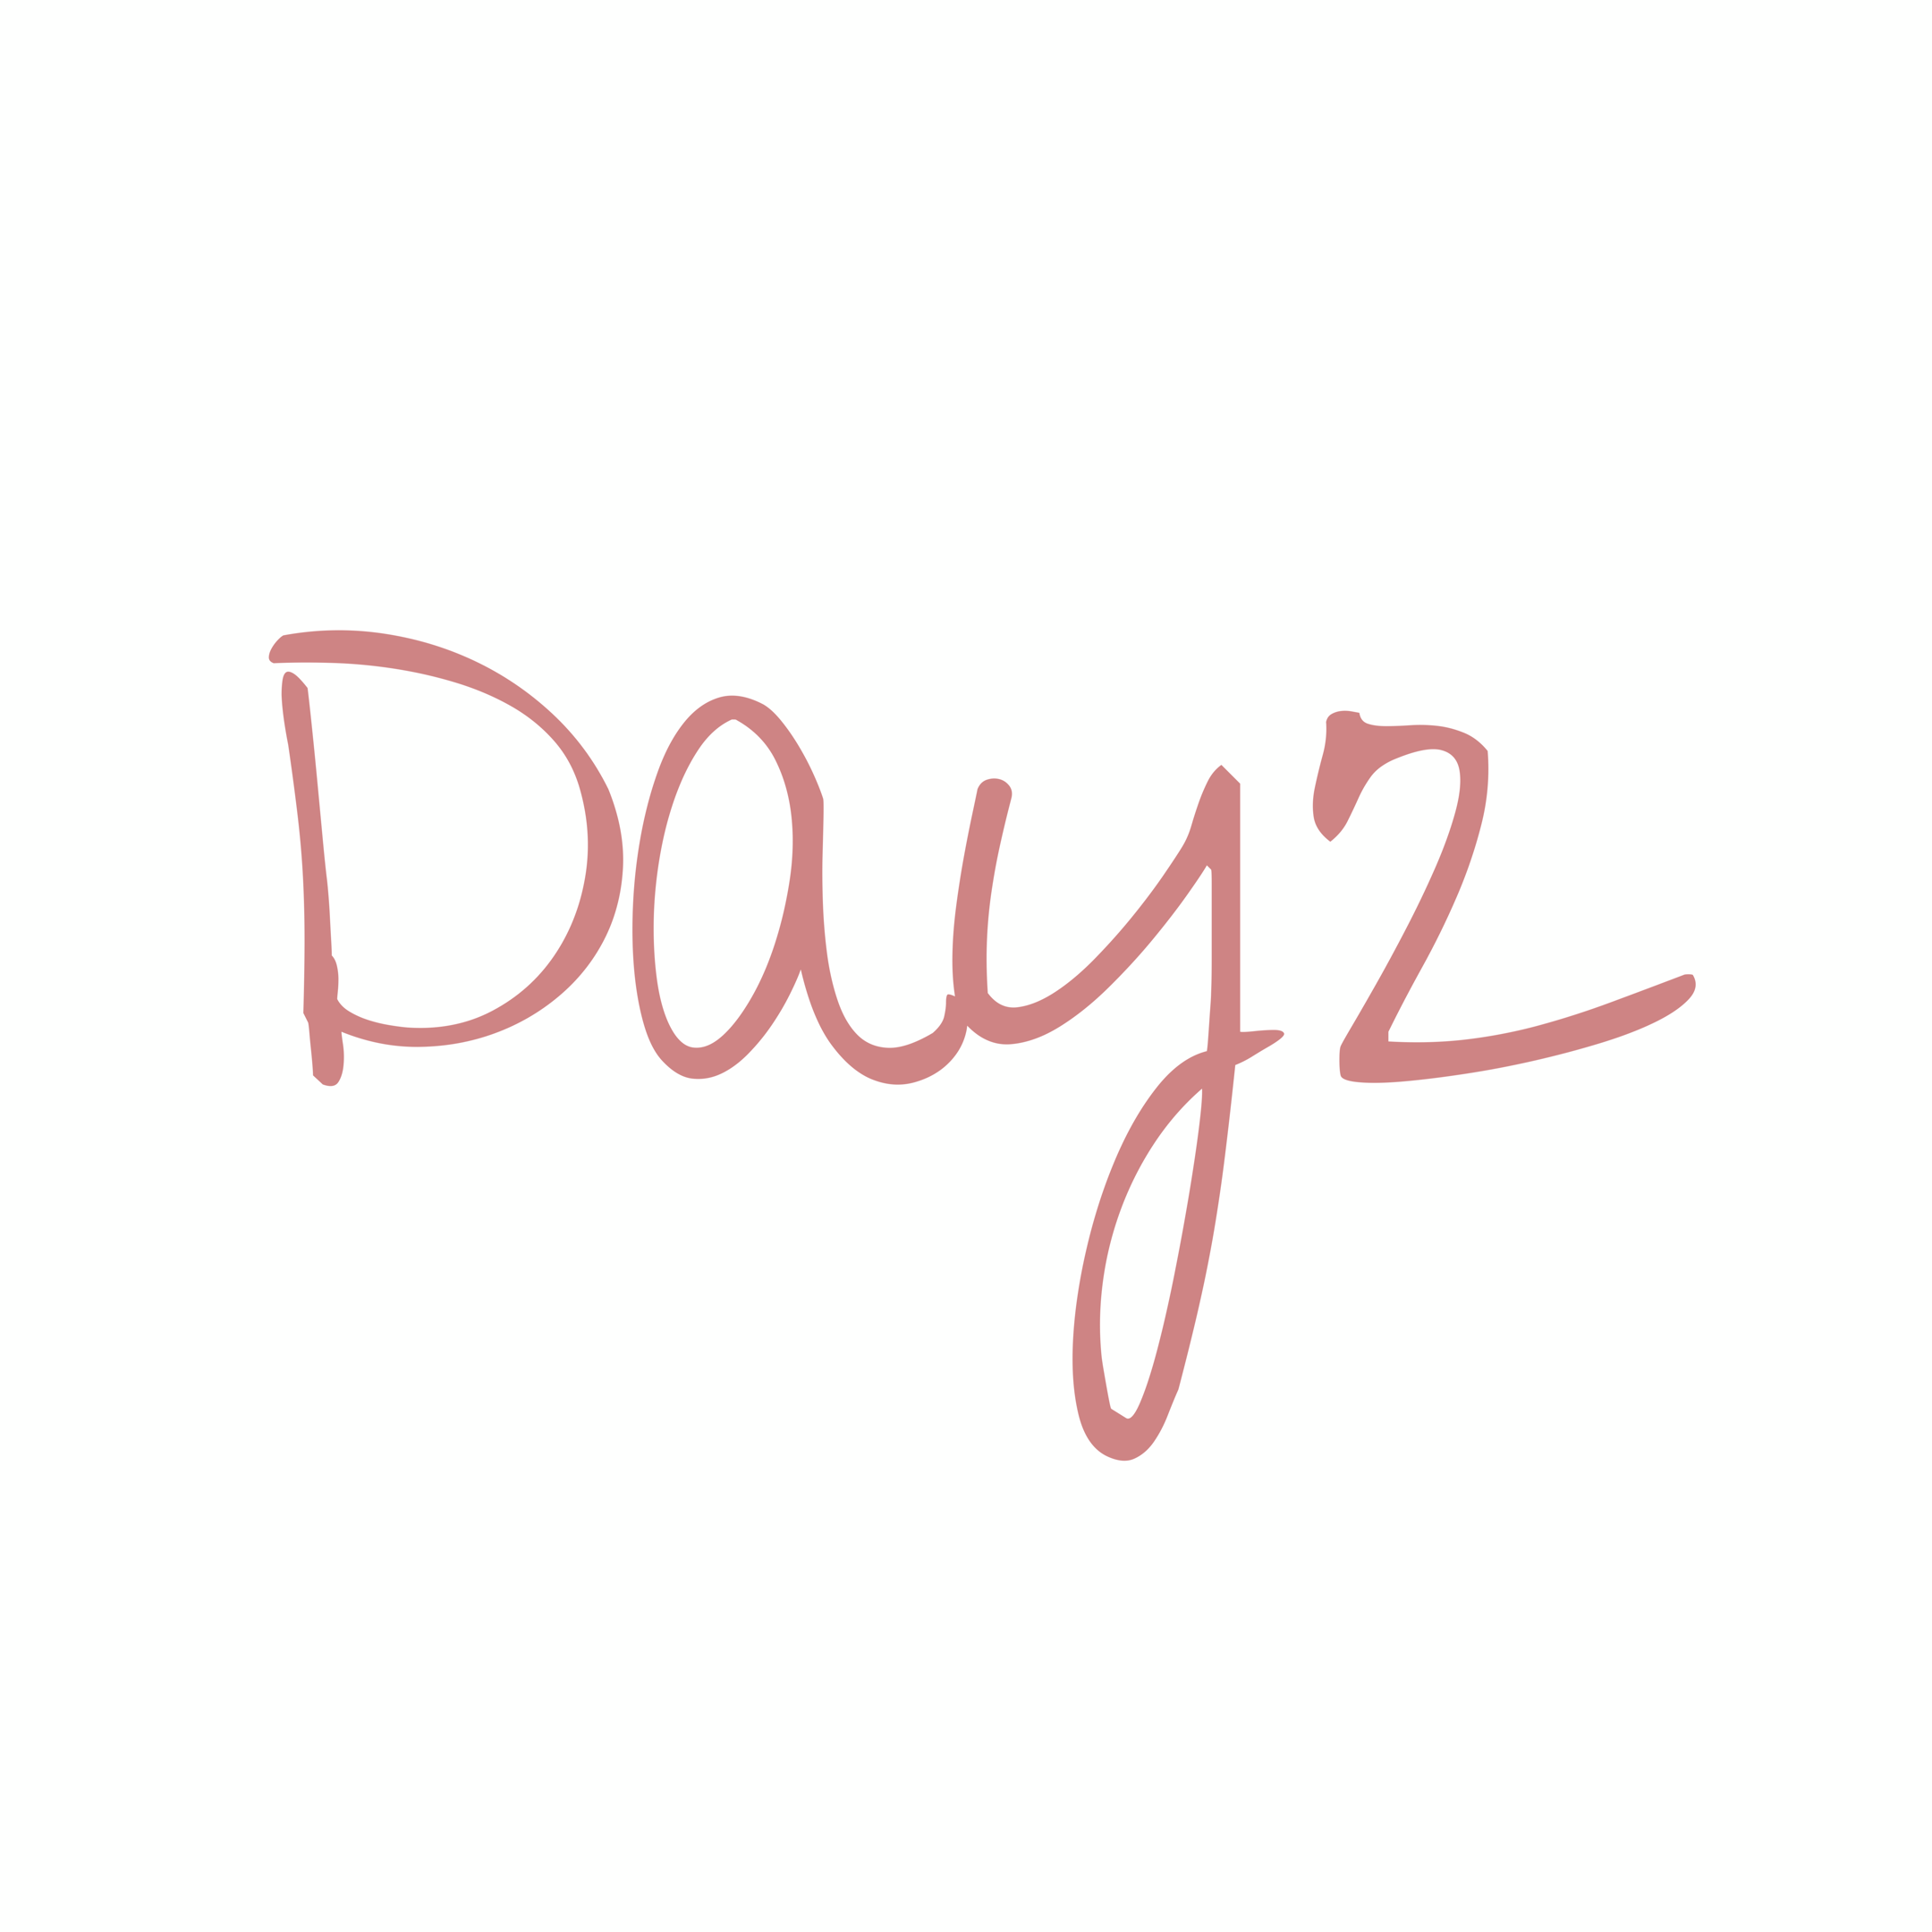 Day 1 (1).PNG